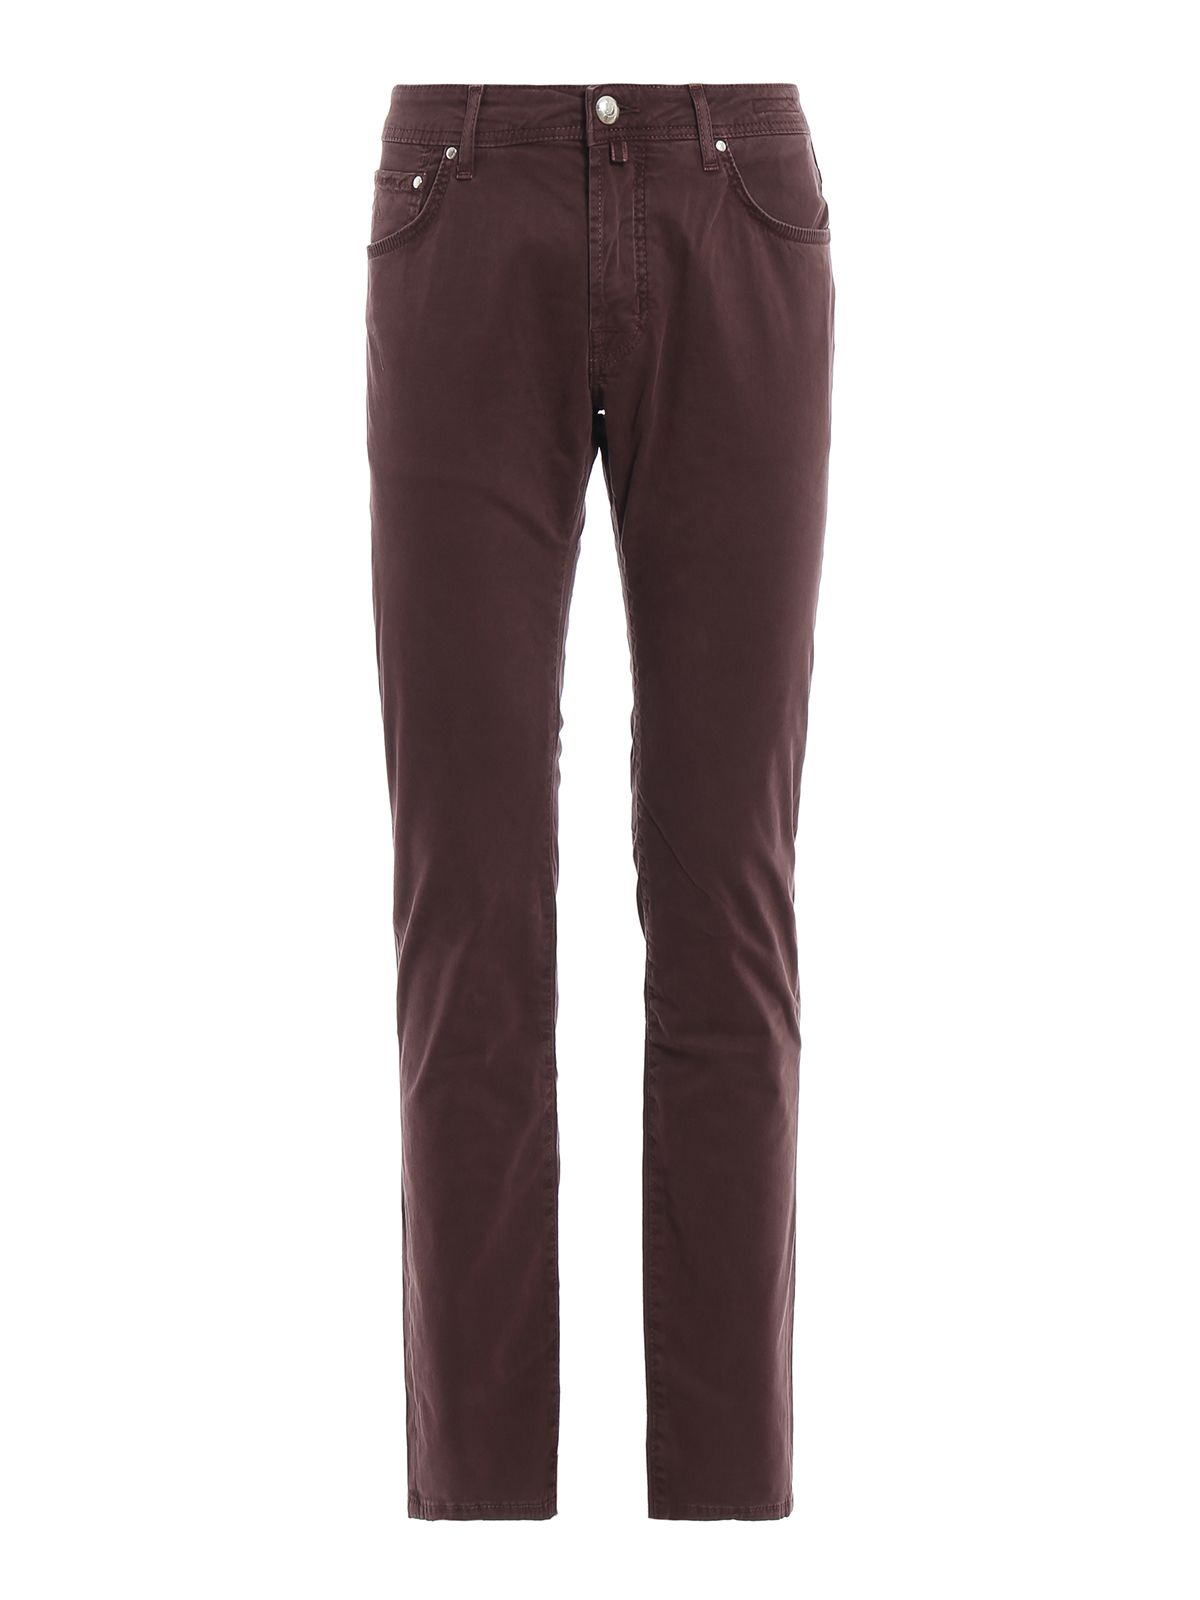 Jacob Cohen Pw622 Comf Purple Denim Tailored Jeans